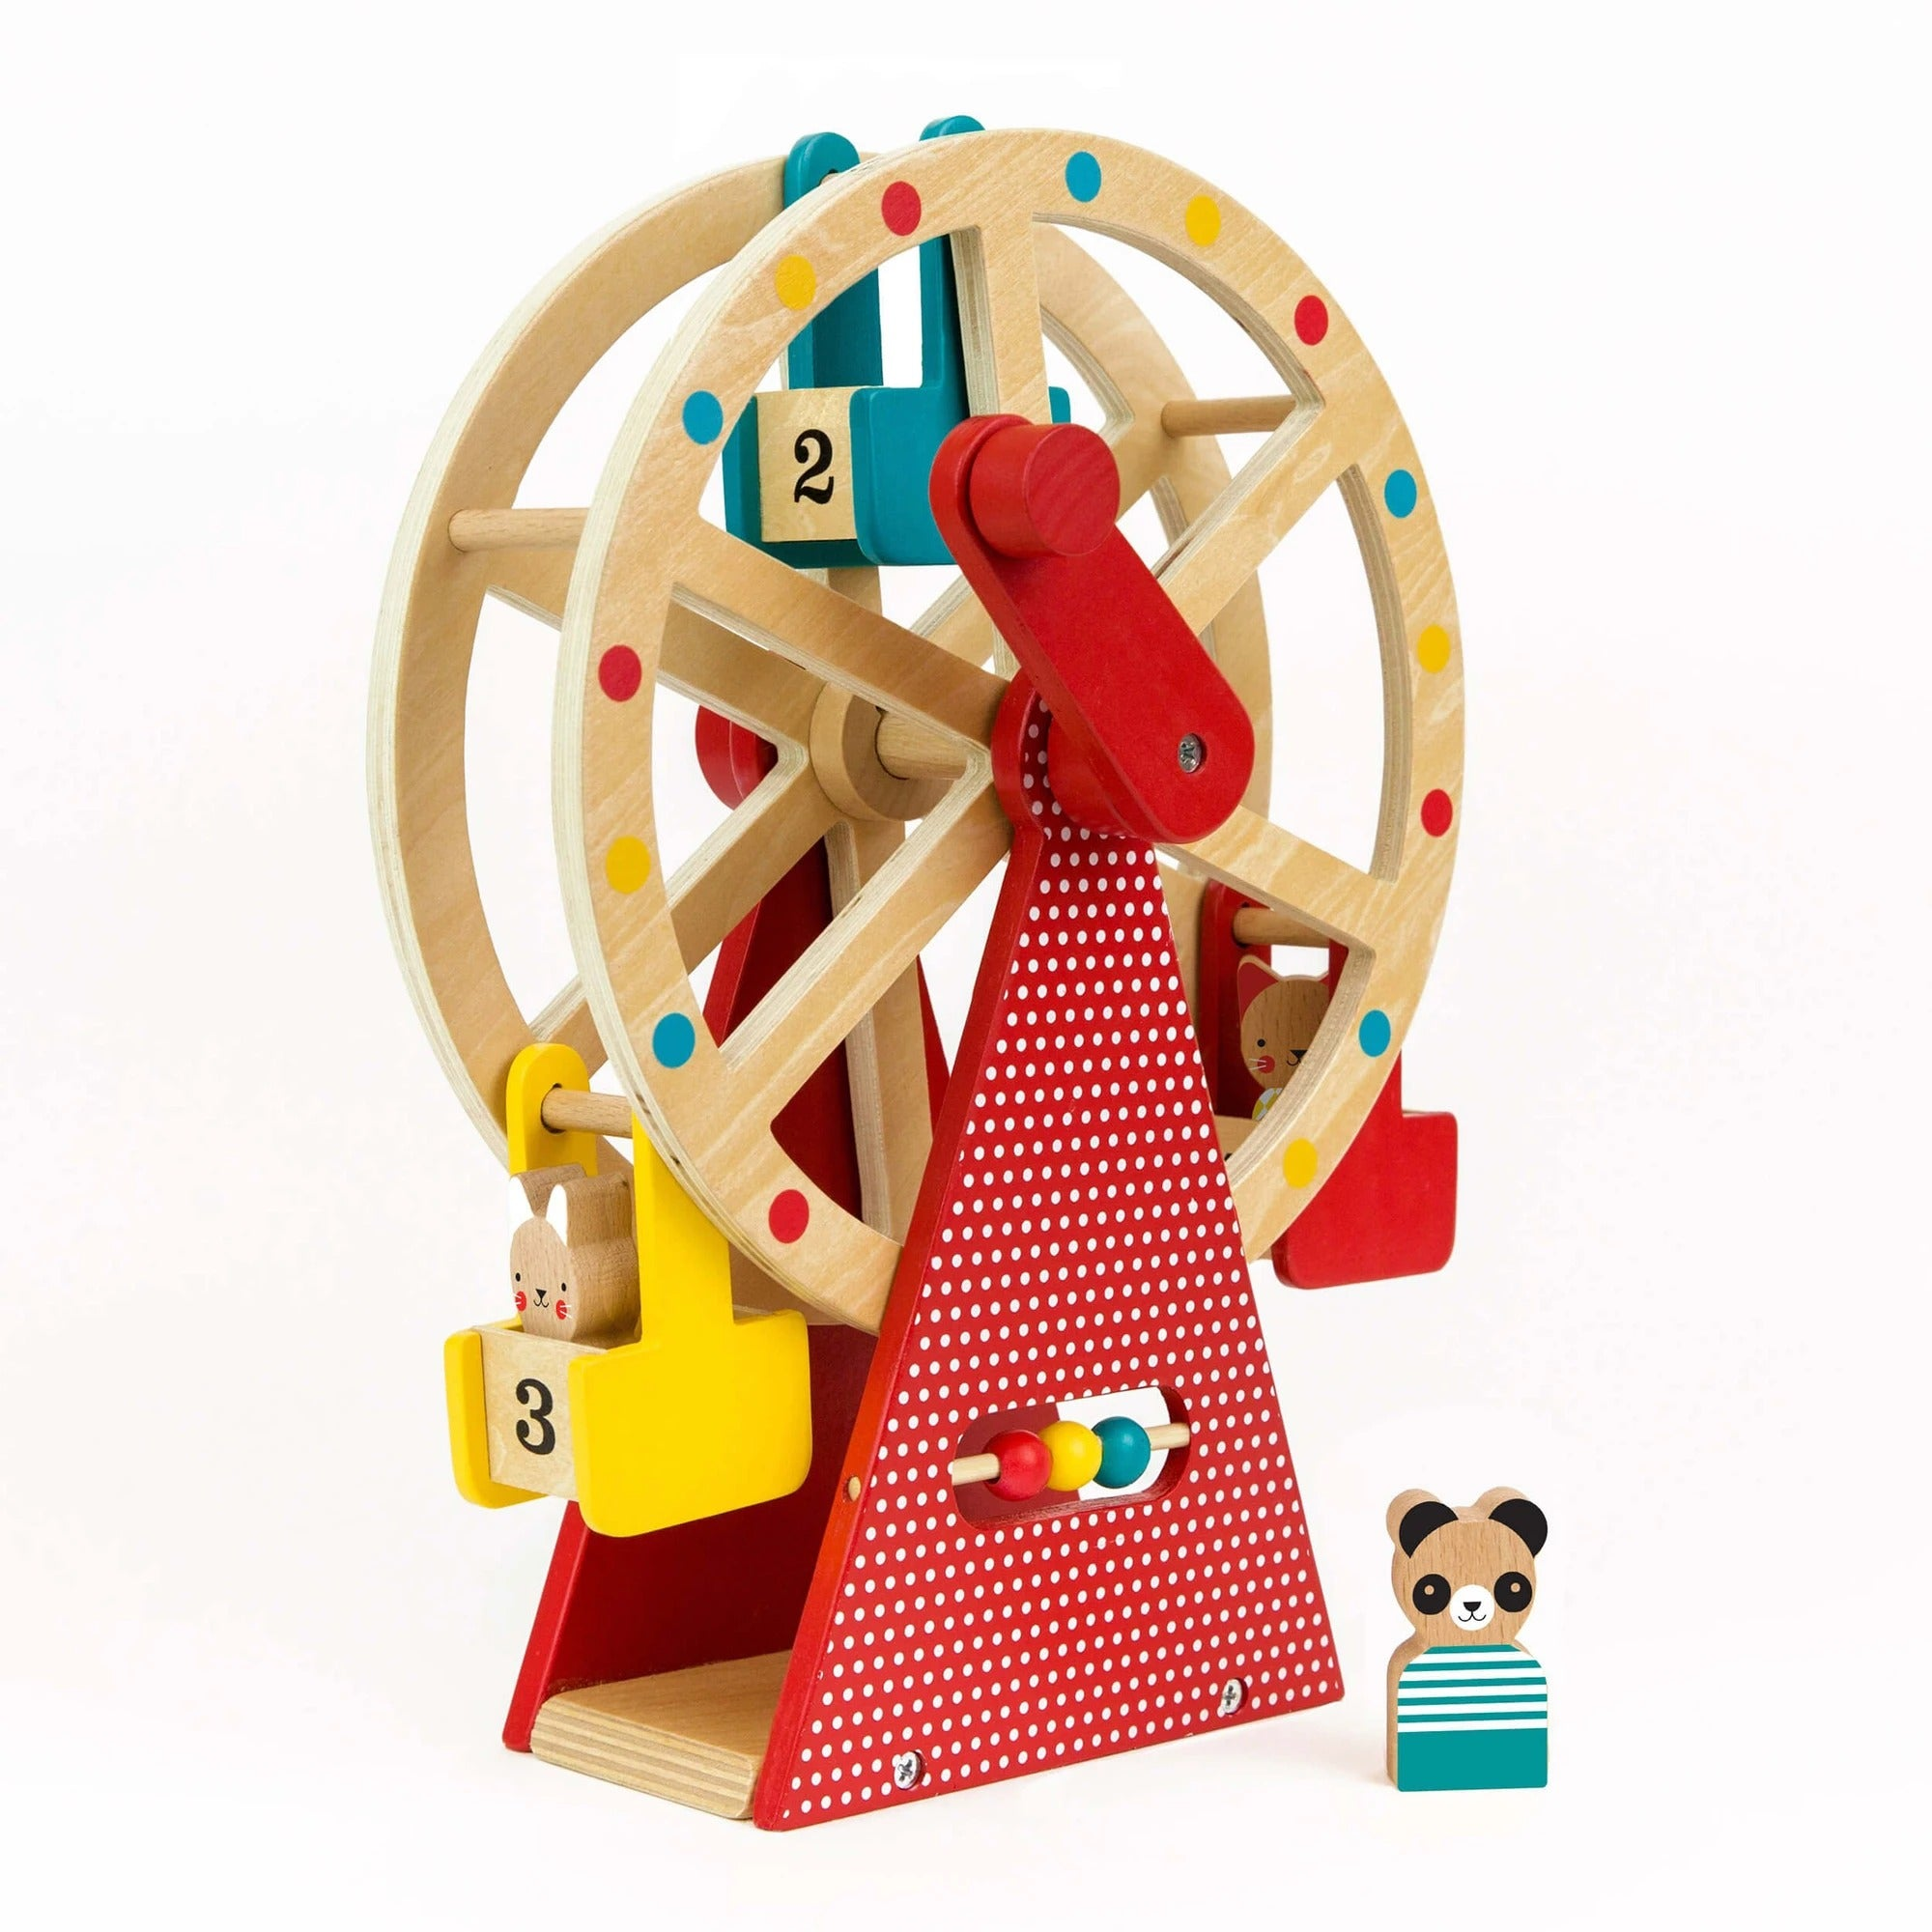 Petit Collage - Petit Collage Wooden Ferris Wheel - last minute gift idea - melbourne